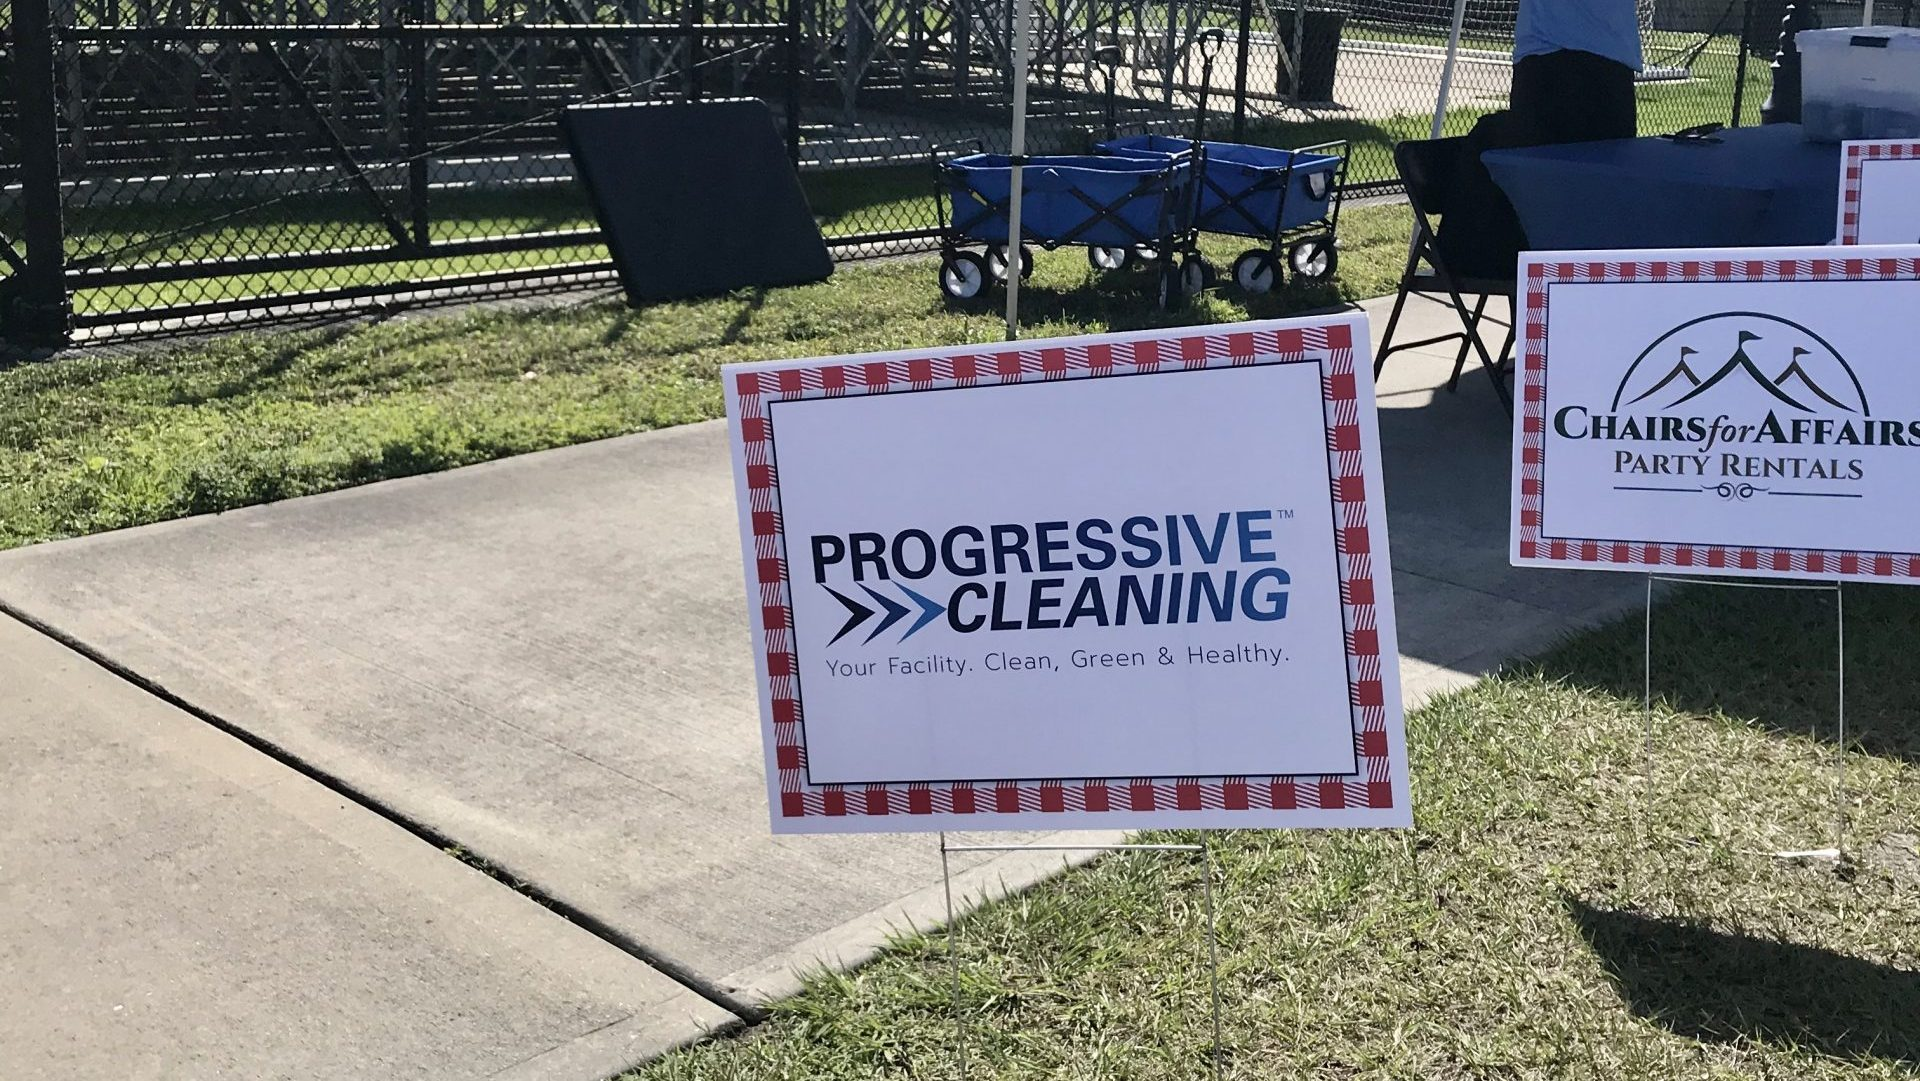 progressive cleaning pit sponsor sign at efsc annual backyard bbq